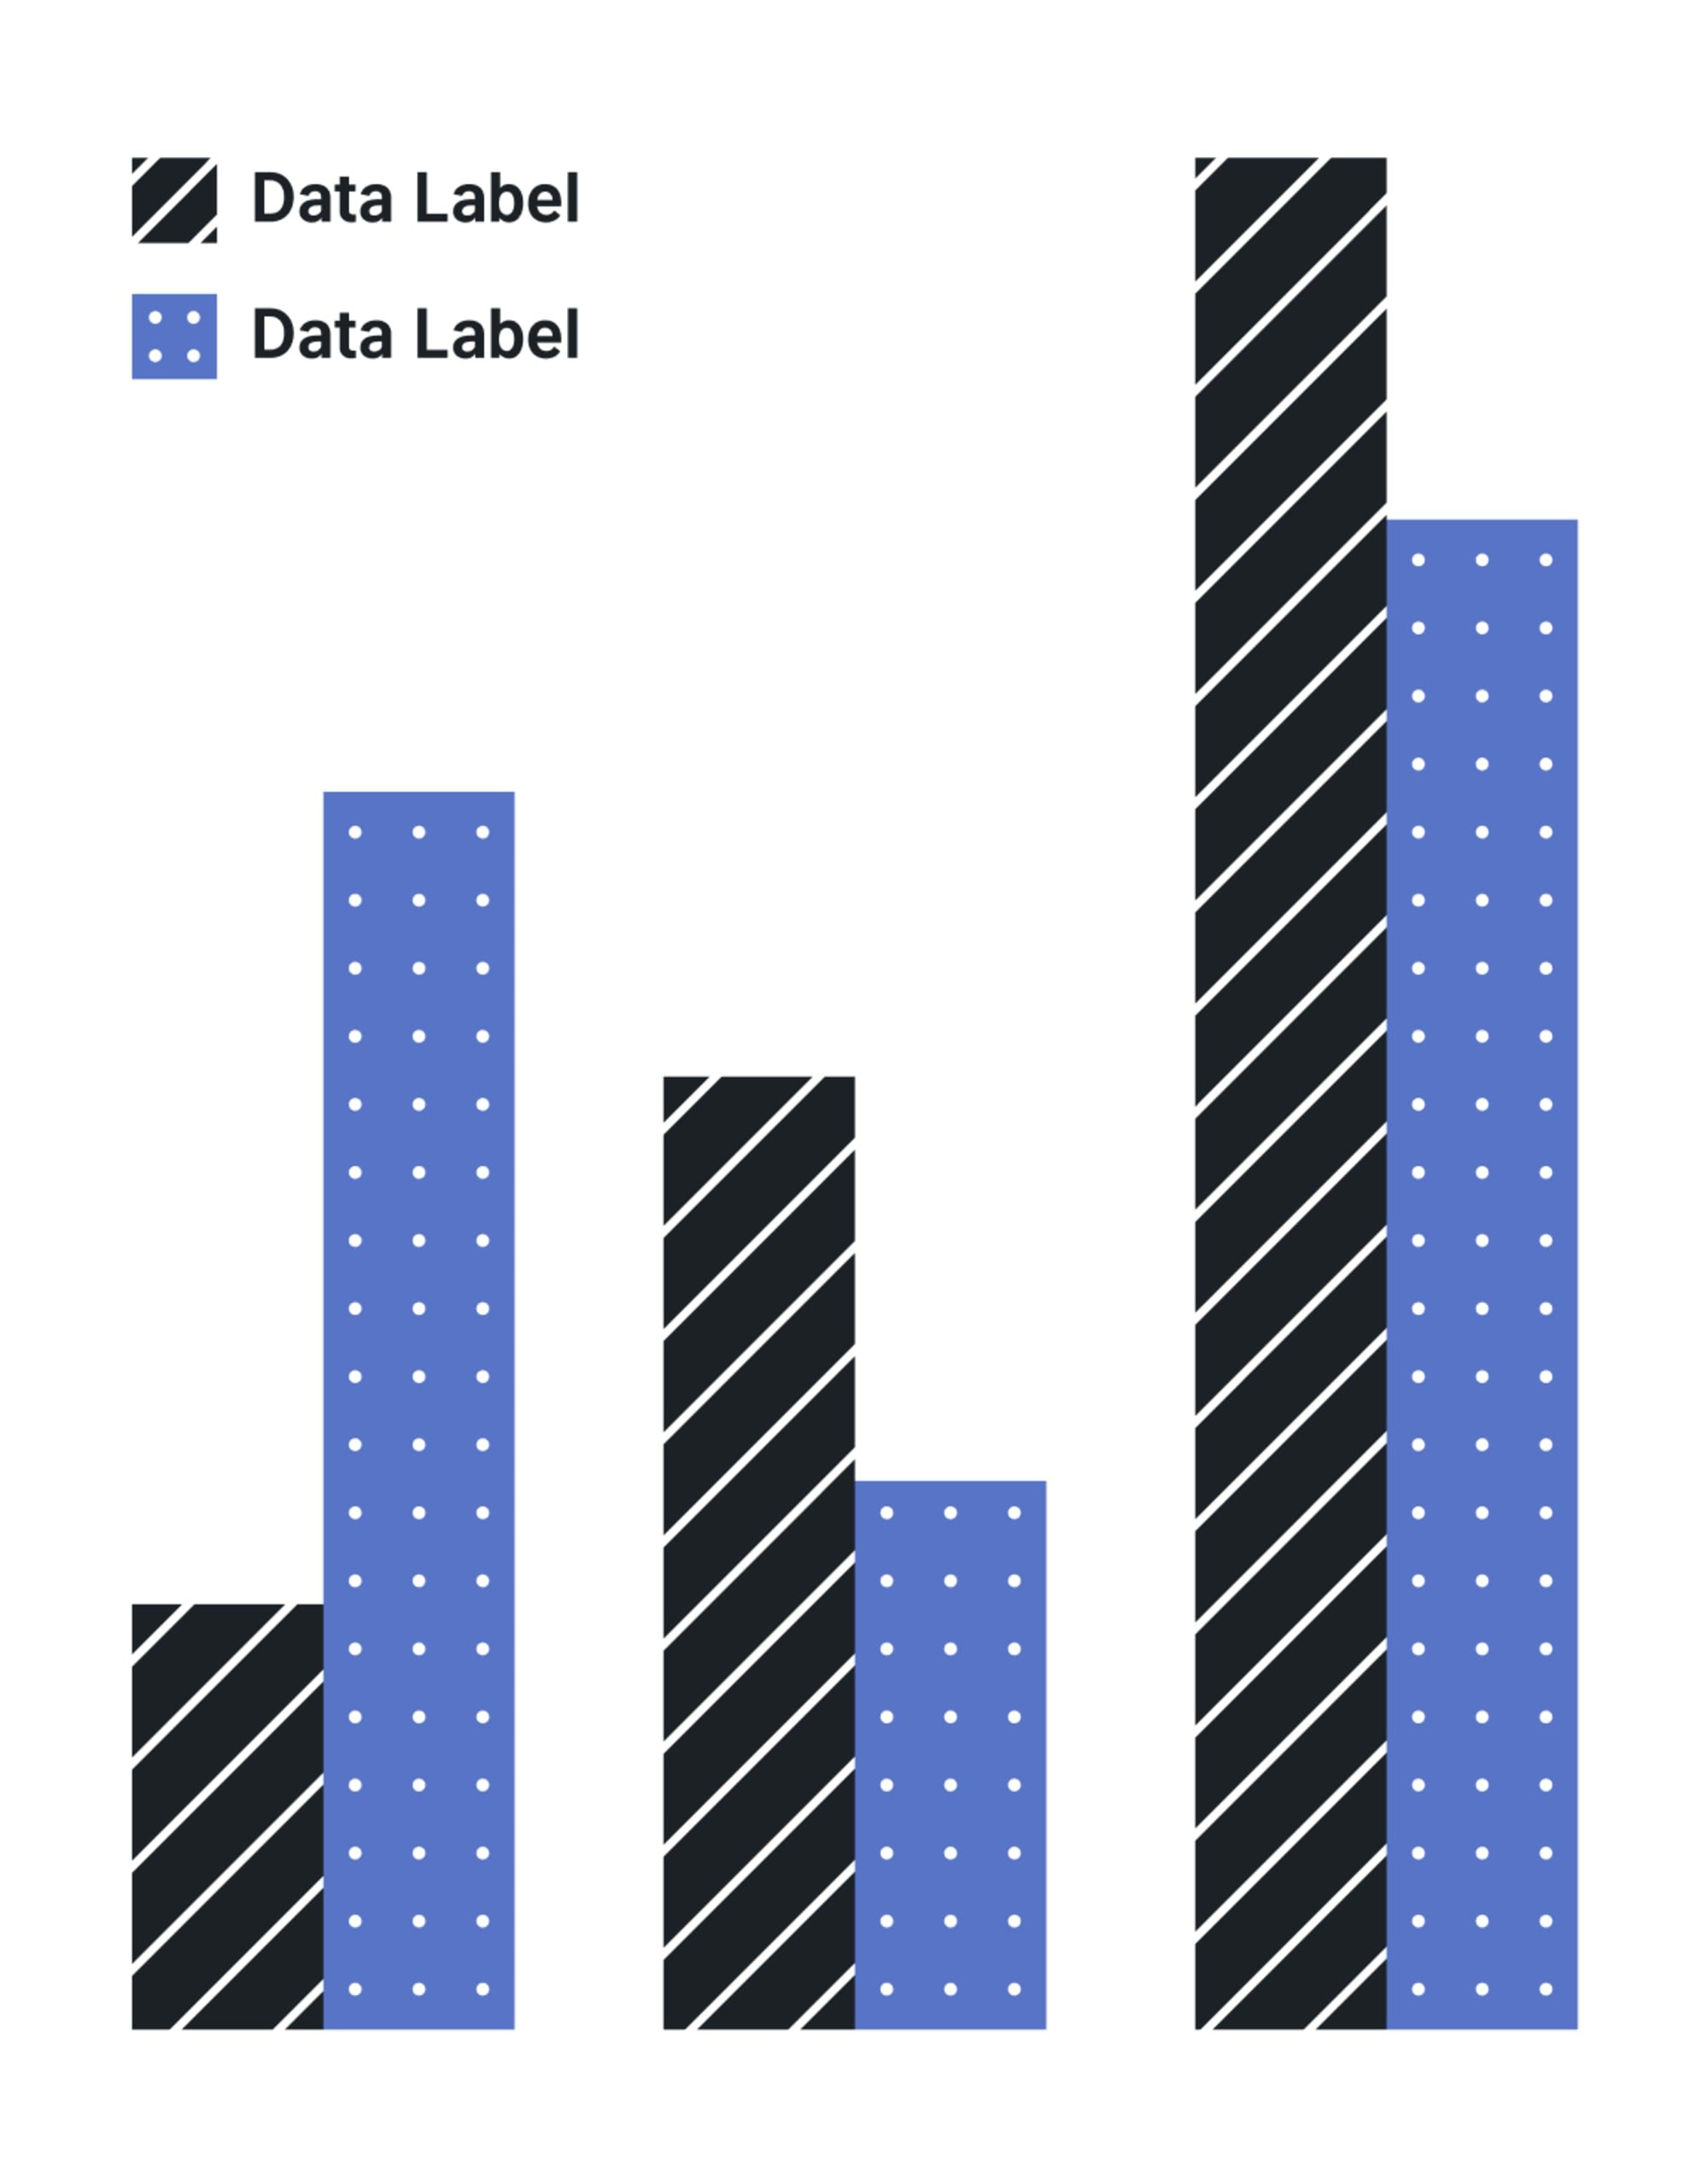 Color should not be the only visual clue. It's a good idea to use patterns as well as color in charts